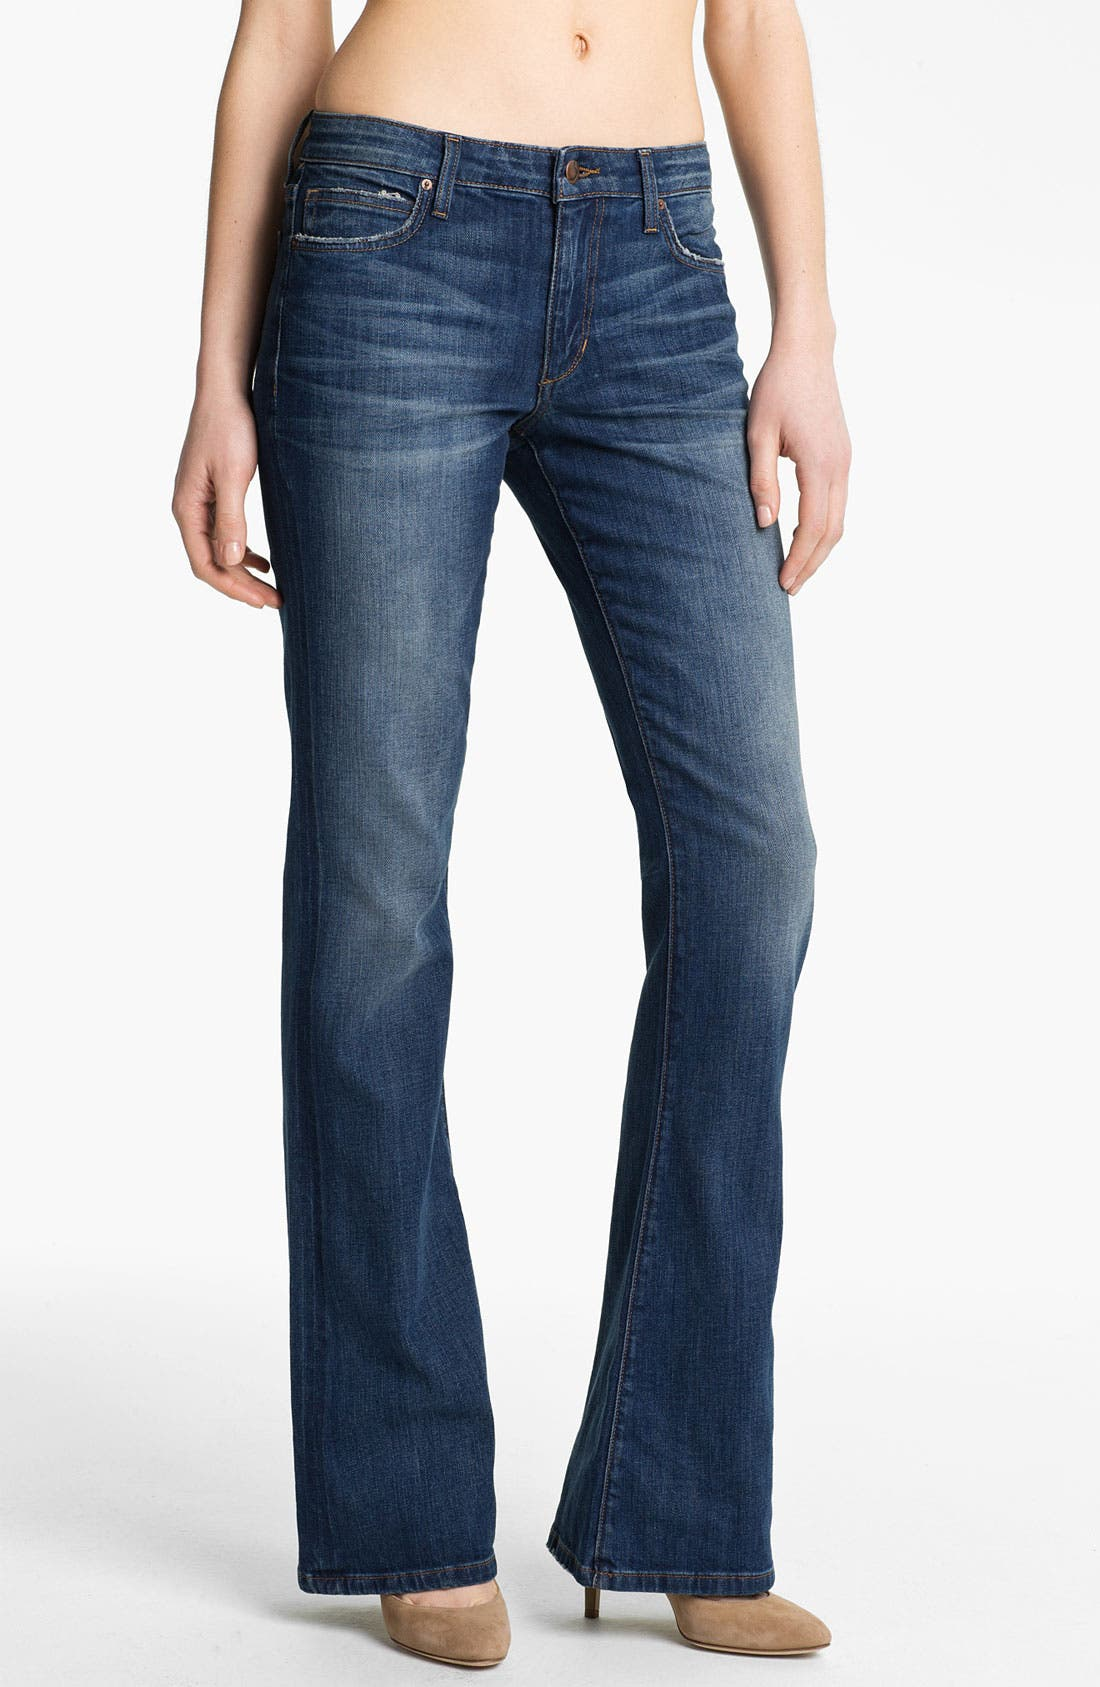 Alternate Image 1 Selected - Joe's 'Visionaire' Slim Bootcut Stretch Jeans (Melodie)